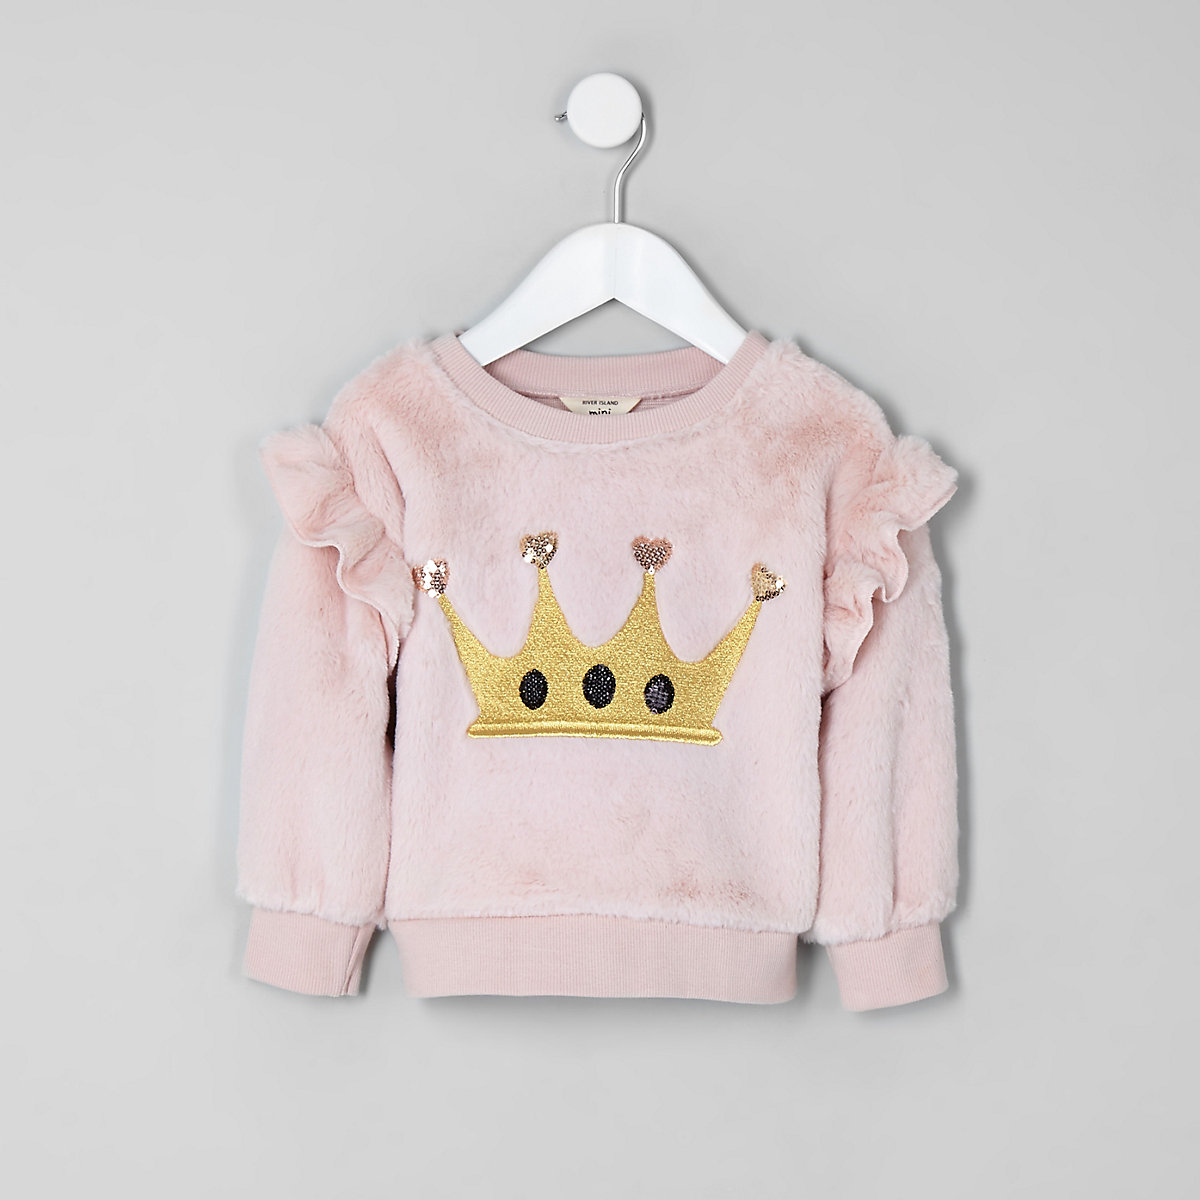 Mini girls pink faux fur crown sweatshirt